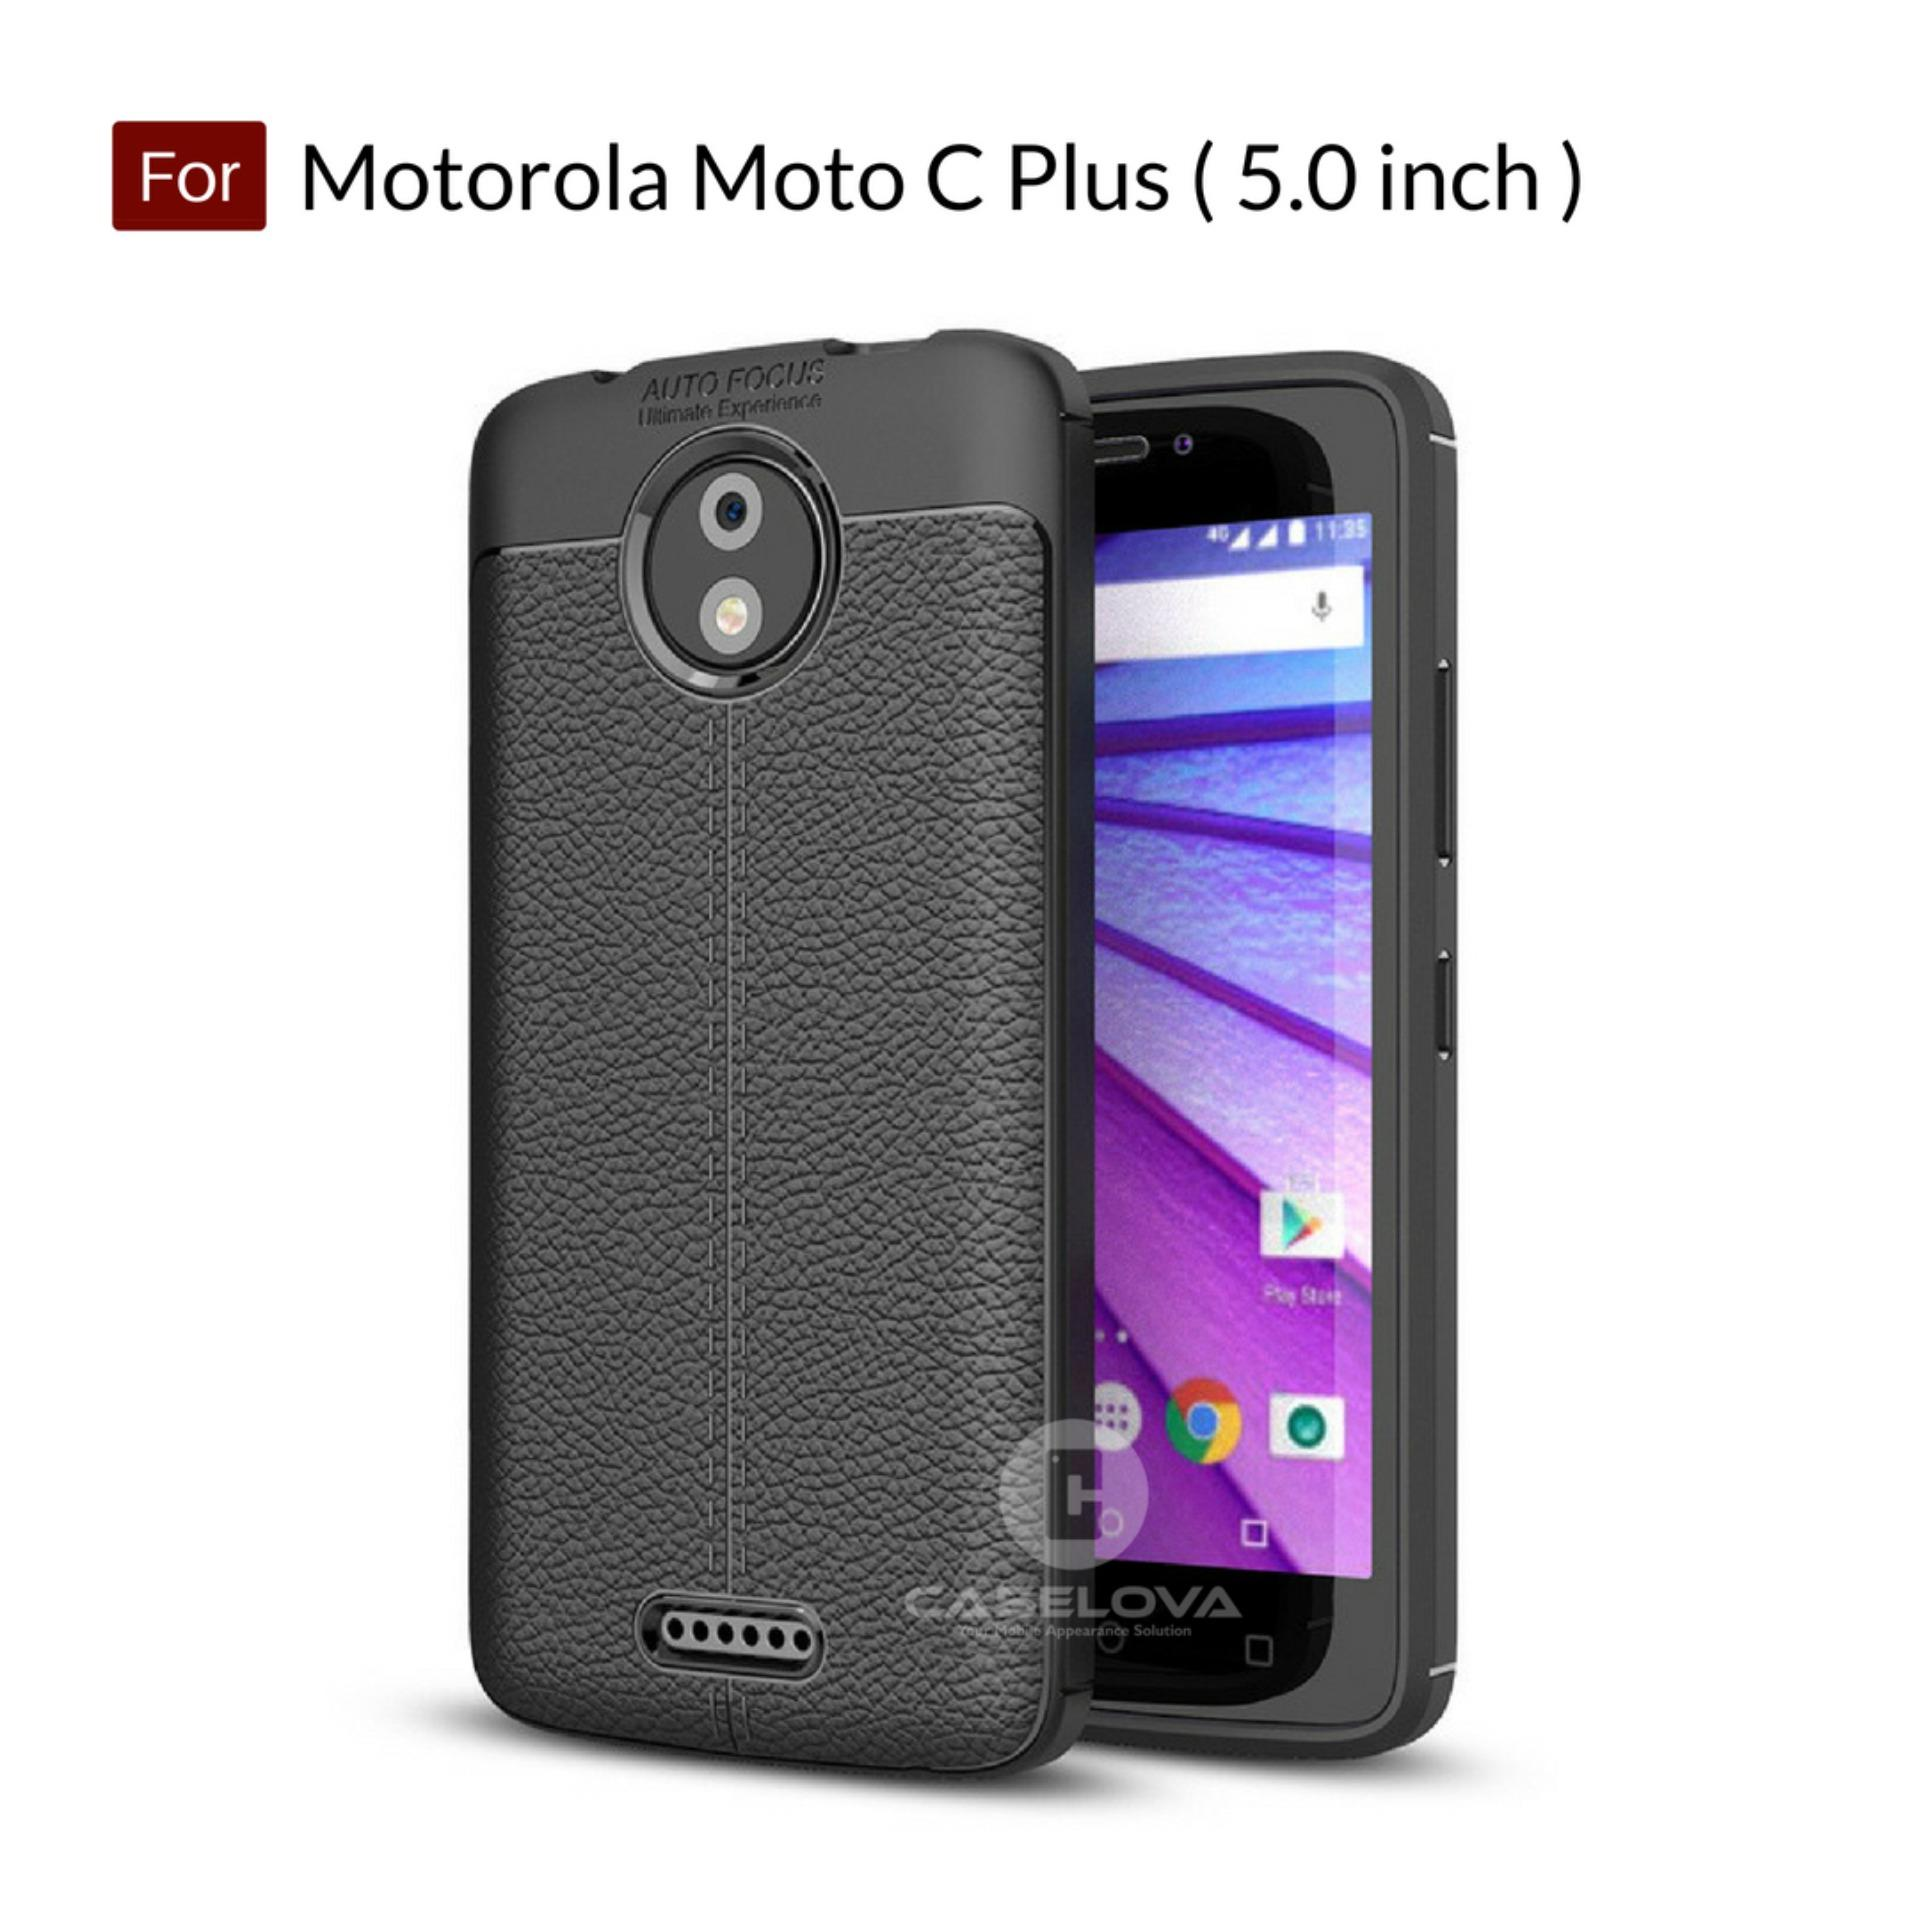 Caselova Ultimate Experience Shockproof Premium Quality Hybrid Case For Motorola Moto C Plus ( Moto C+ ) Layar 5.0 inch - Black